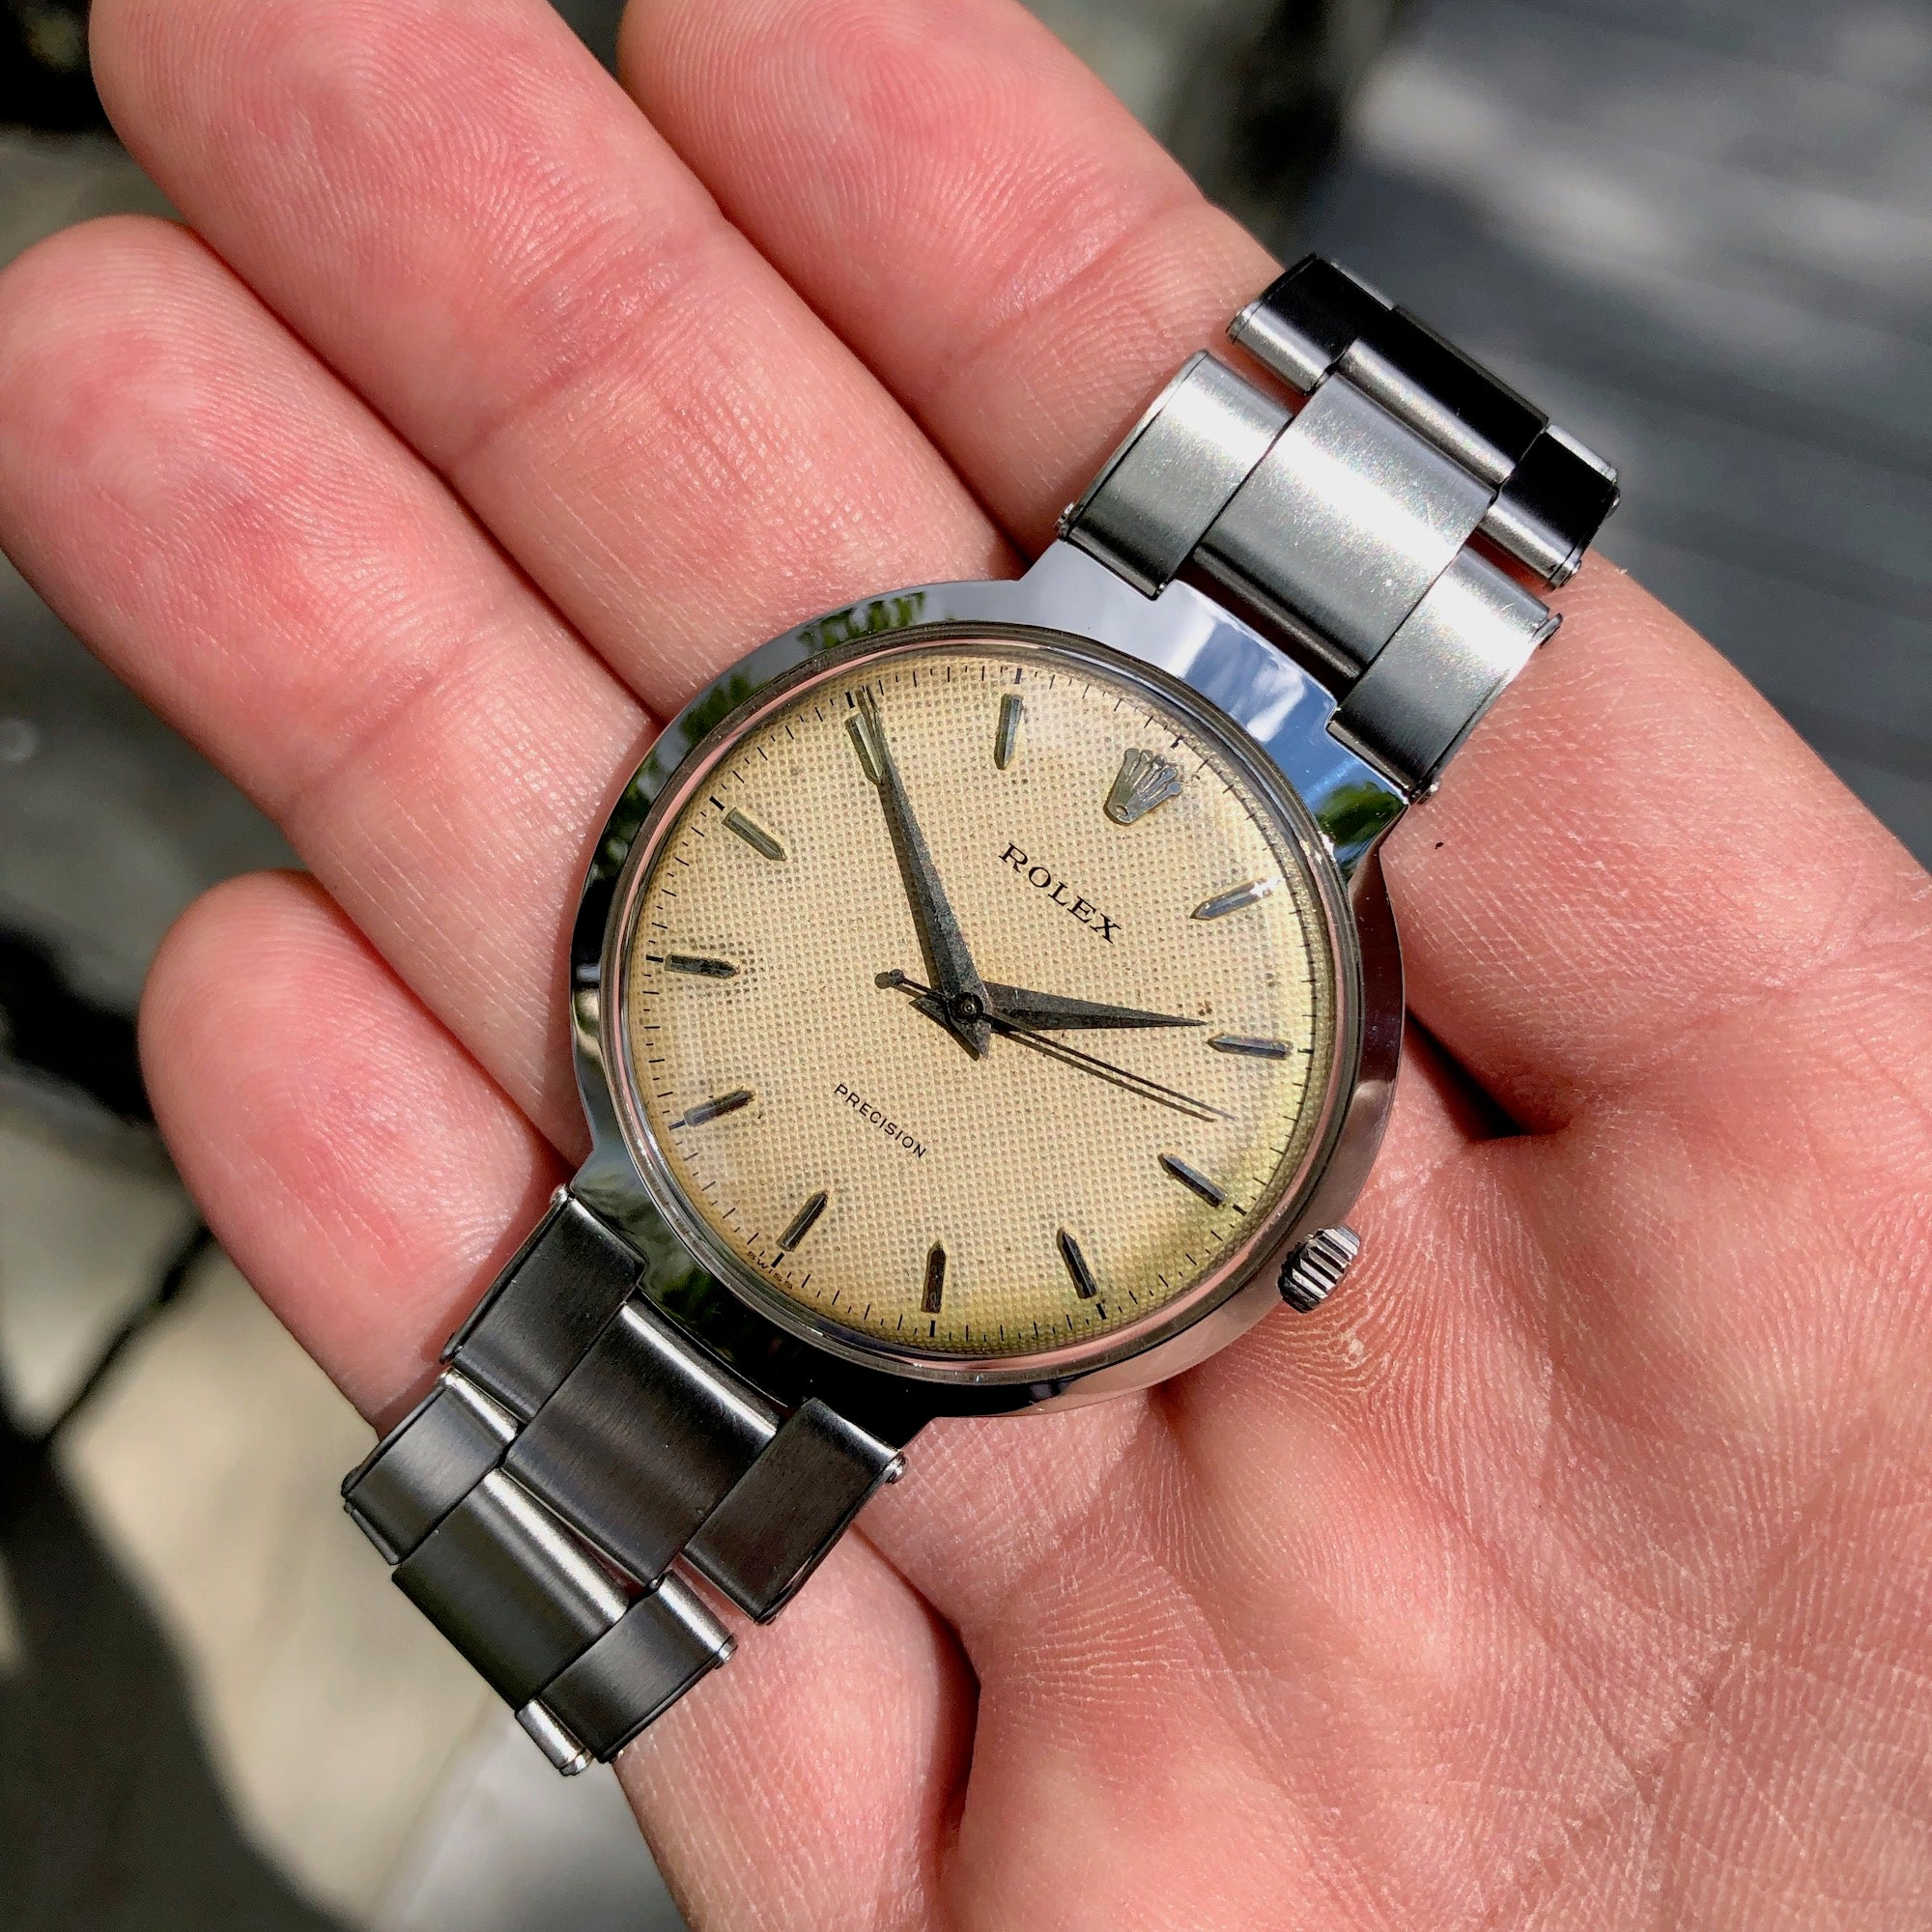 Vintage Rolex Precision 9083 UFO Stainless Steel Cal. 1210 Manual Wristwatch - Hashtag Watch Company